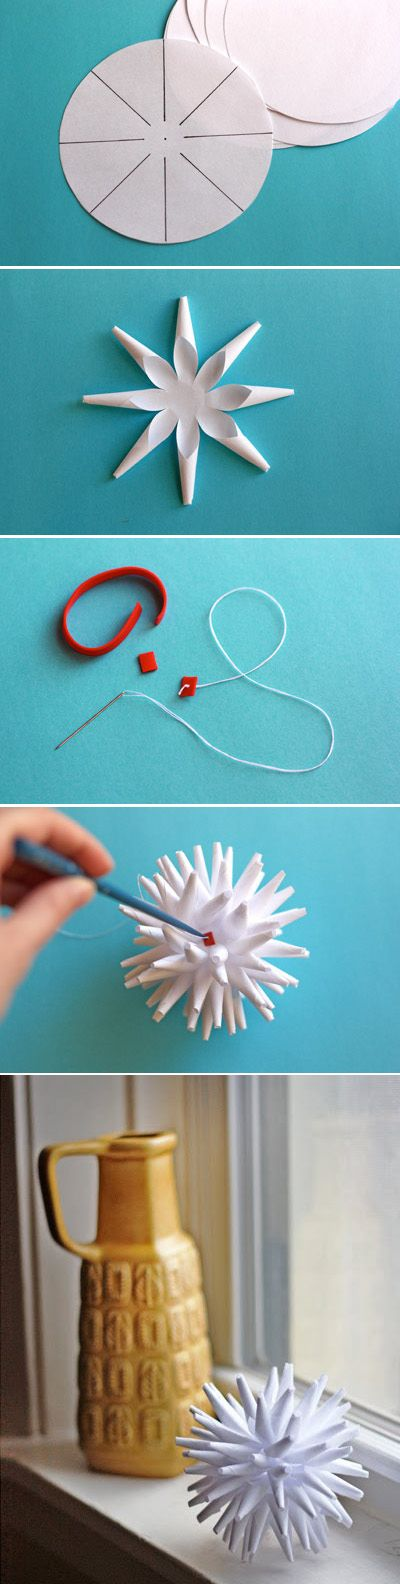 Modern Paper Porcupine Ornament | 40 DIY Home Decor Ideas That Aren't Just For Christmas